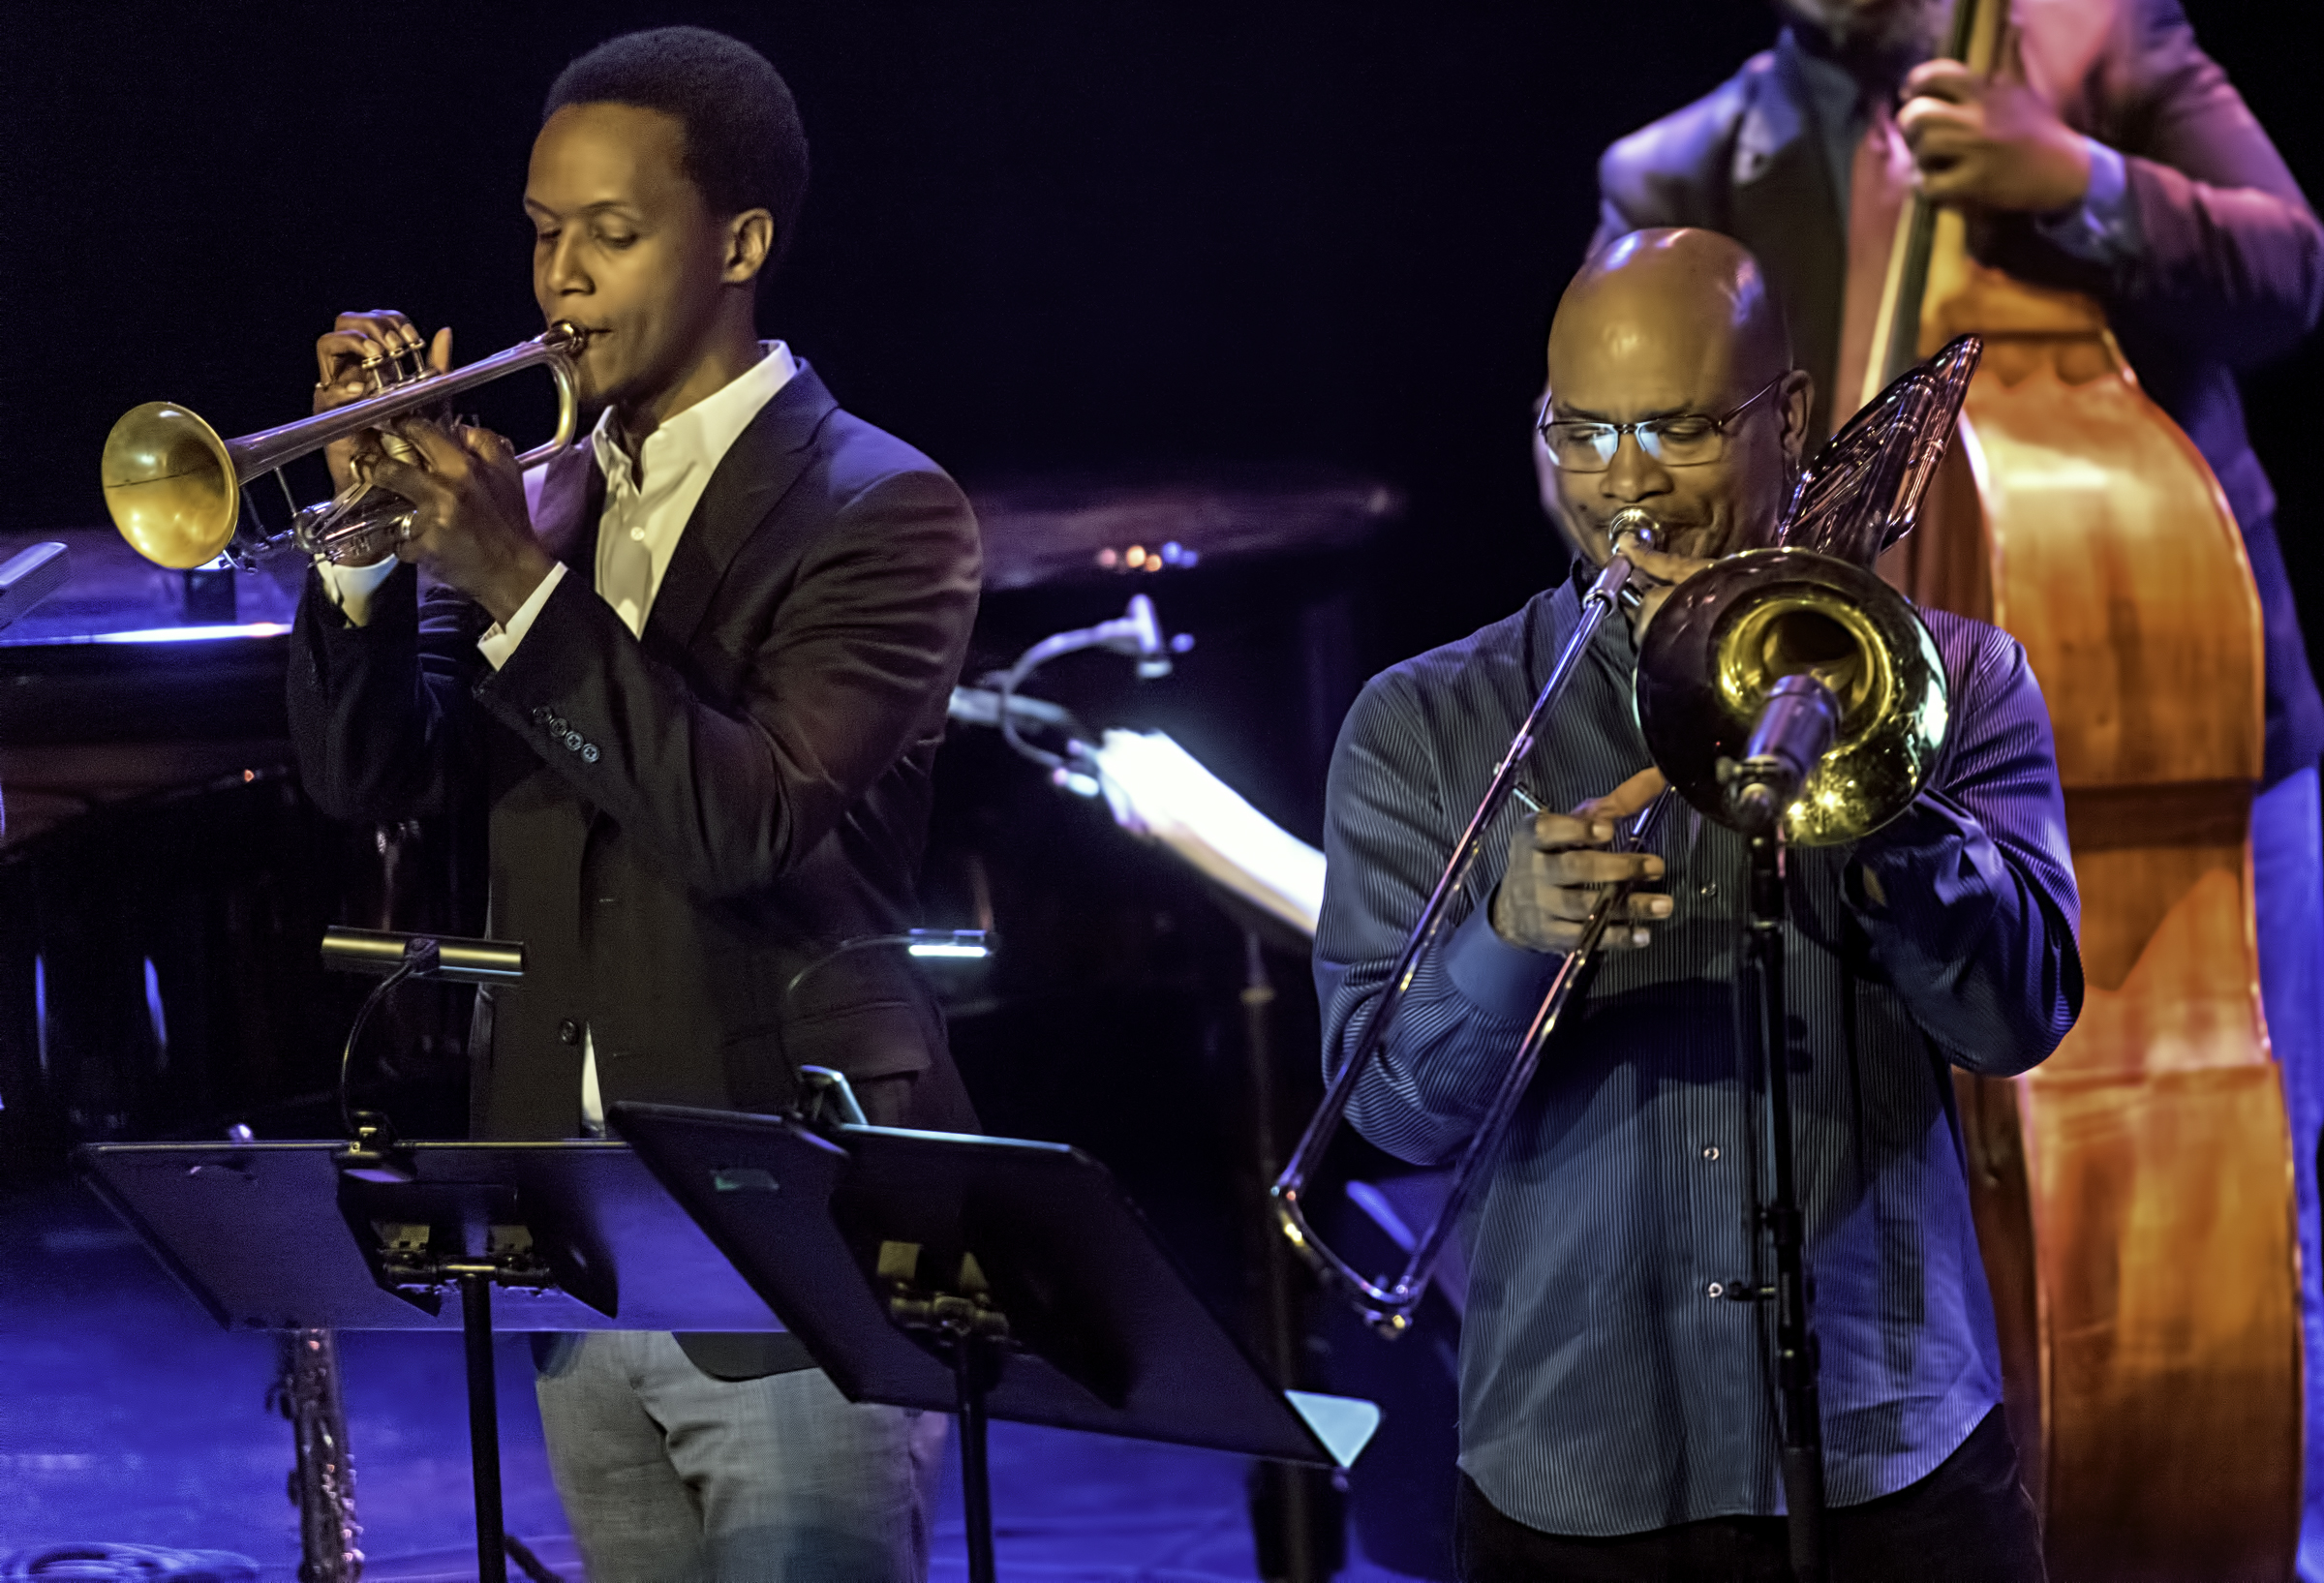 Jason Palmer and Robin Eubanks with Ravi Coltrane and the Void at The Montreal International Jazz Festival 2017